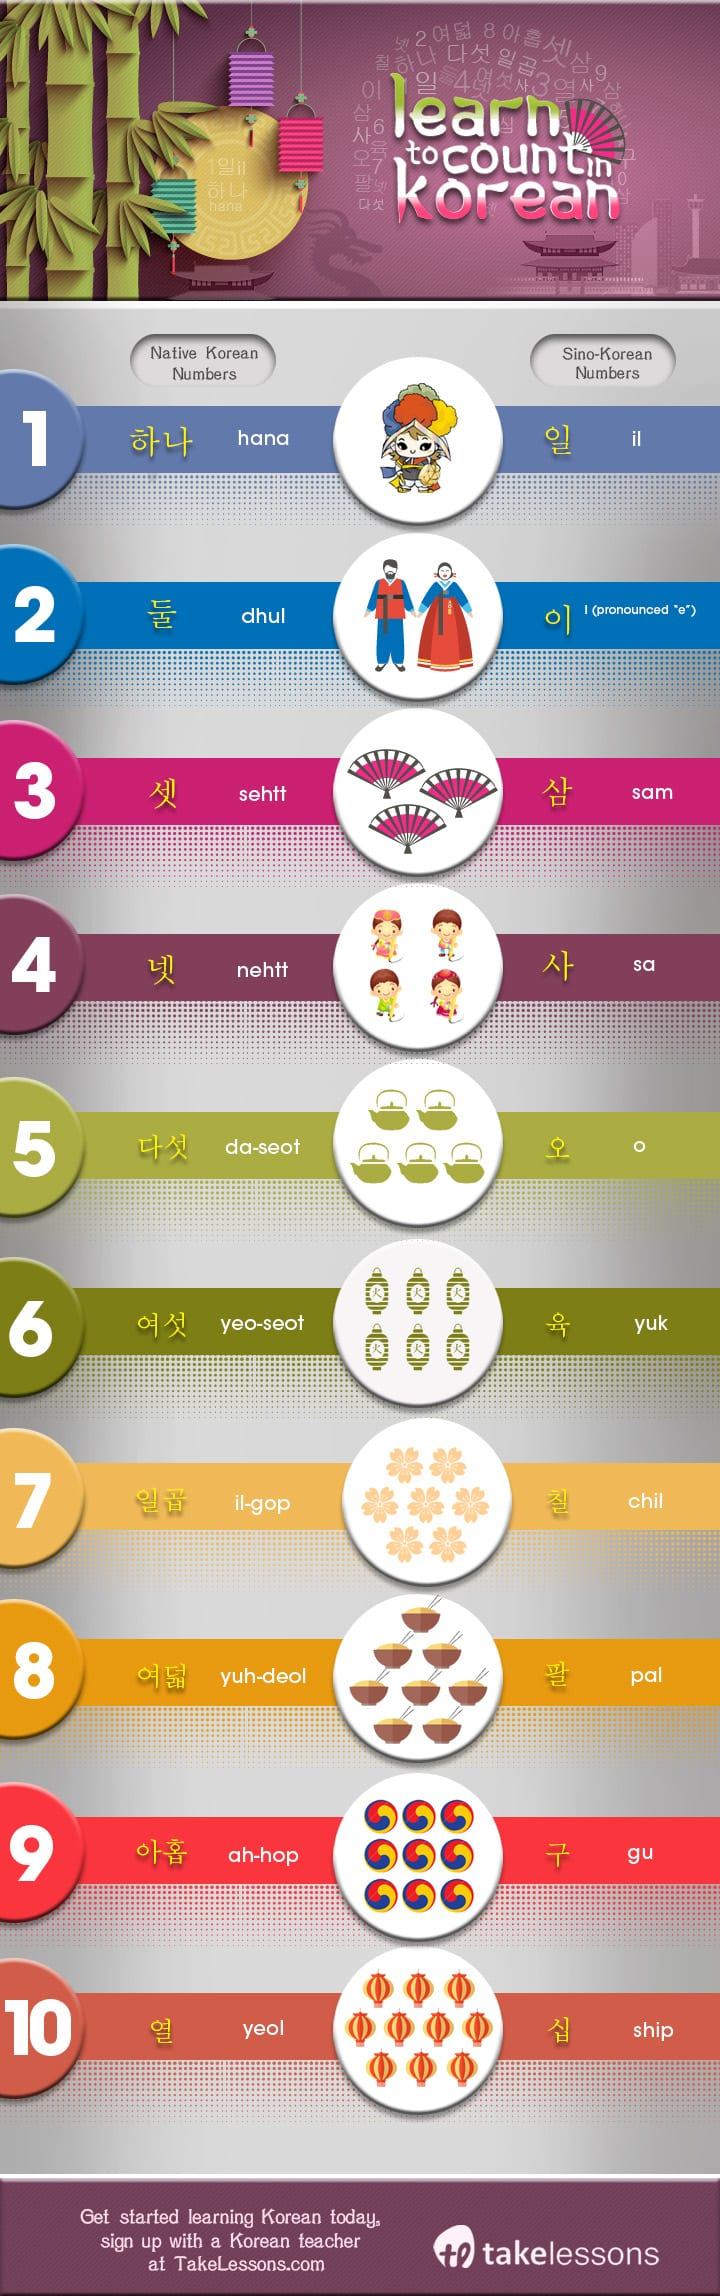 numbers 1-10 in native and sino Korean infographic